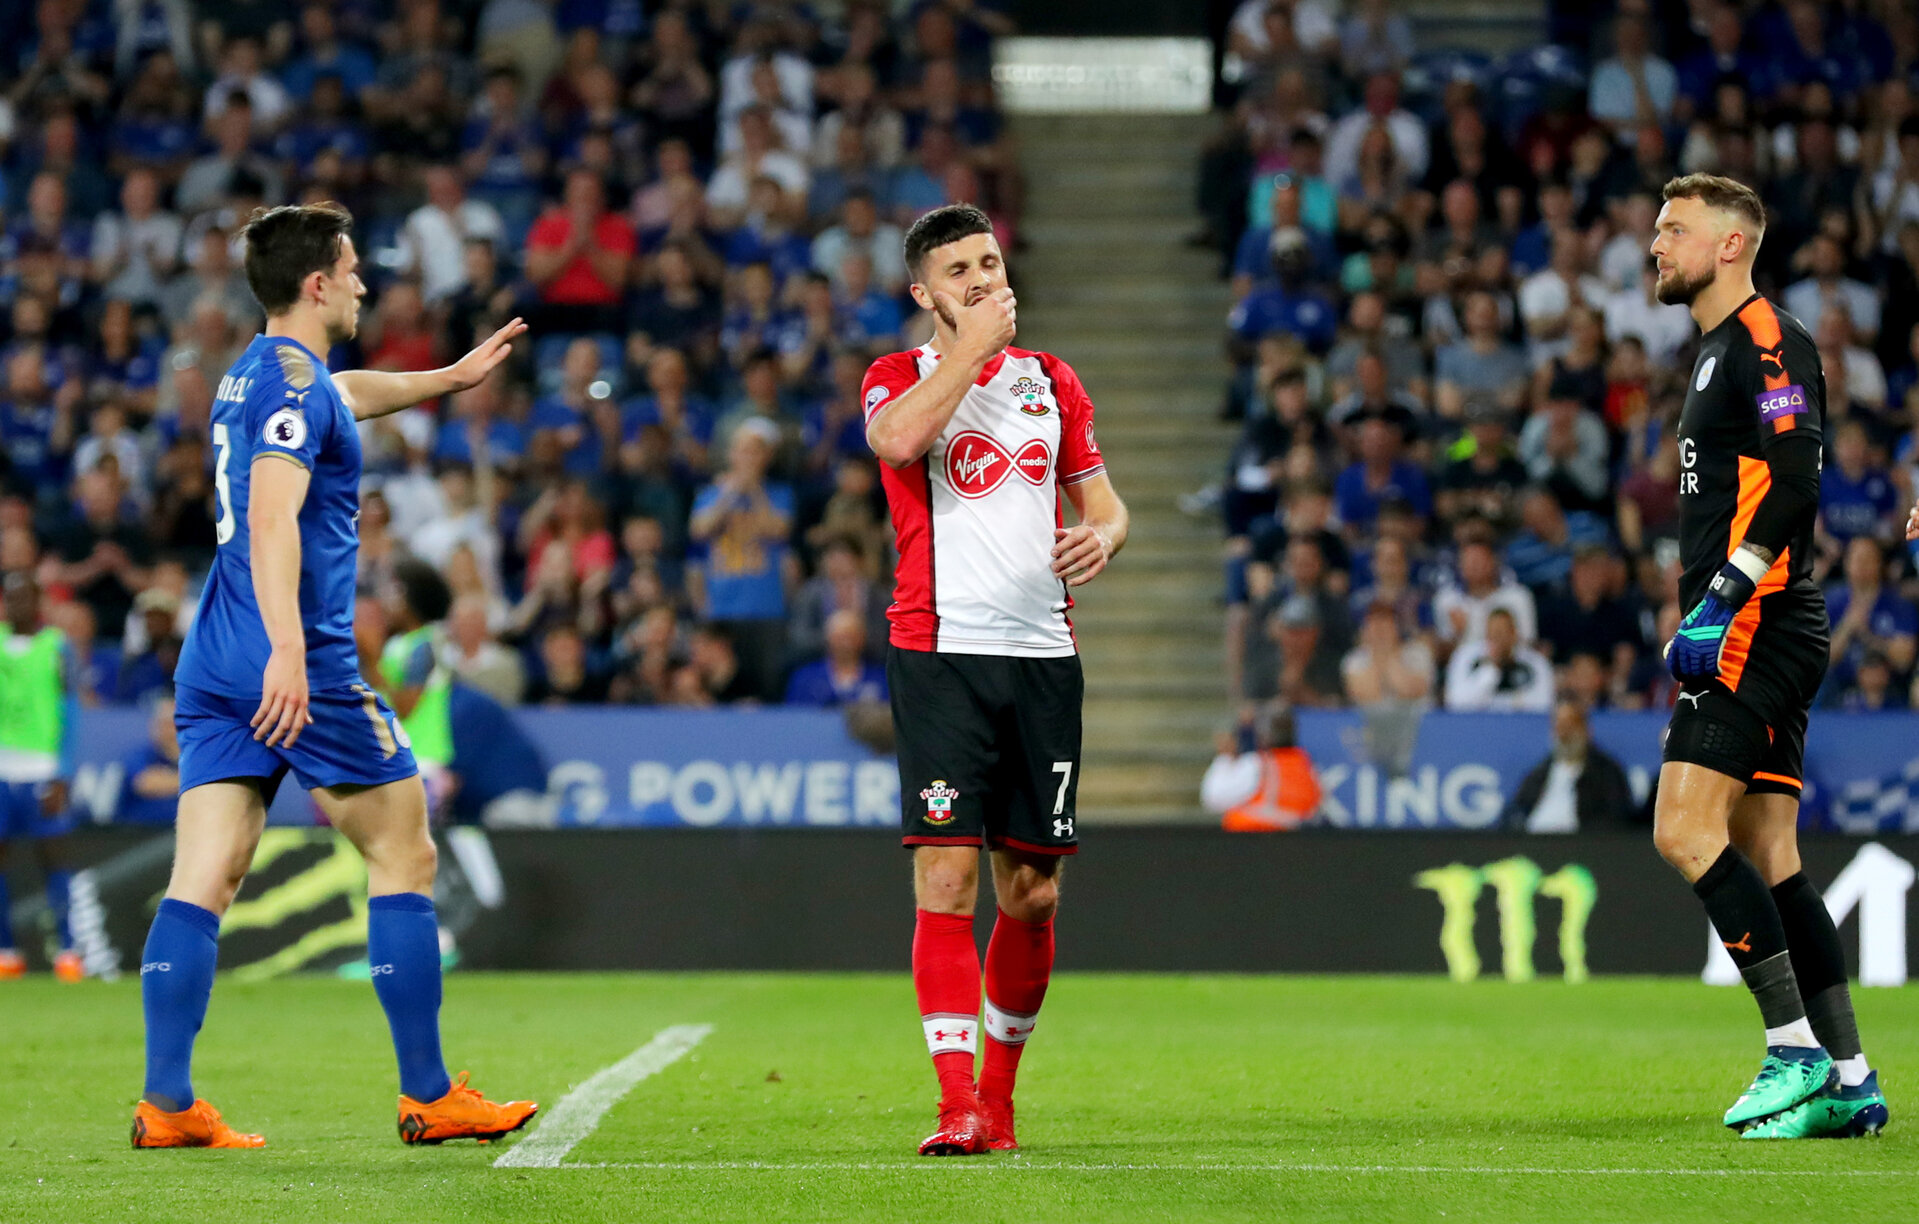 LEICESTER, ENGLAND - APRIL 19: Shane Long of Southampton during the Premier League match between Leicester City and Southampton at The King Power Stadium on April 19, 2018 in Leicester, England. (Photo by Matt Watson/Southampton FC via Getty Images)